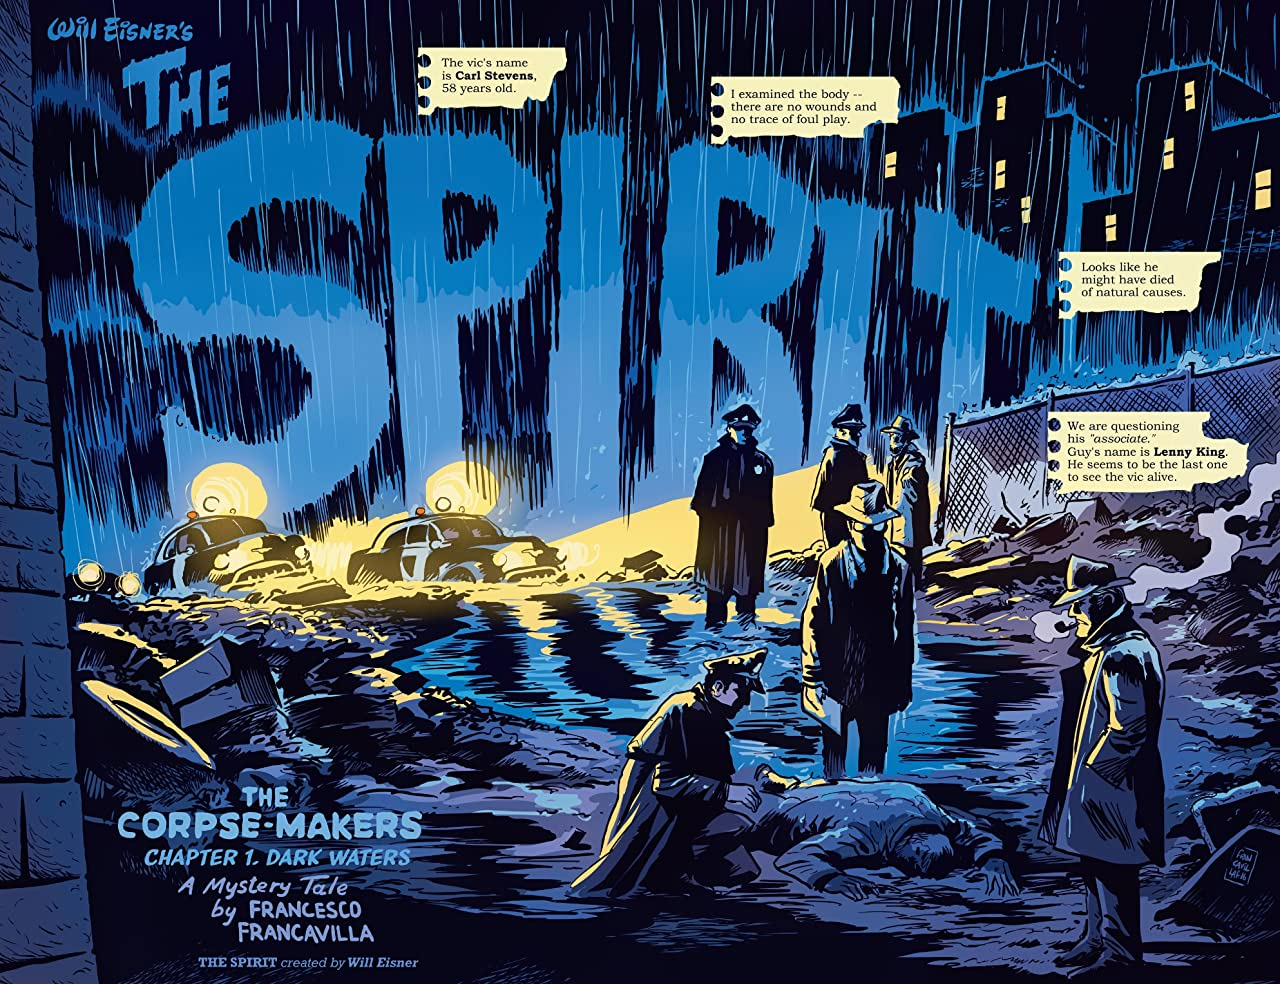 Will Eisner's The Spirit: Corpse-Makers Vol. 1